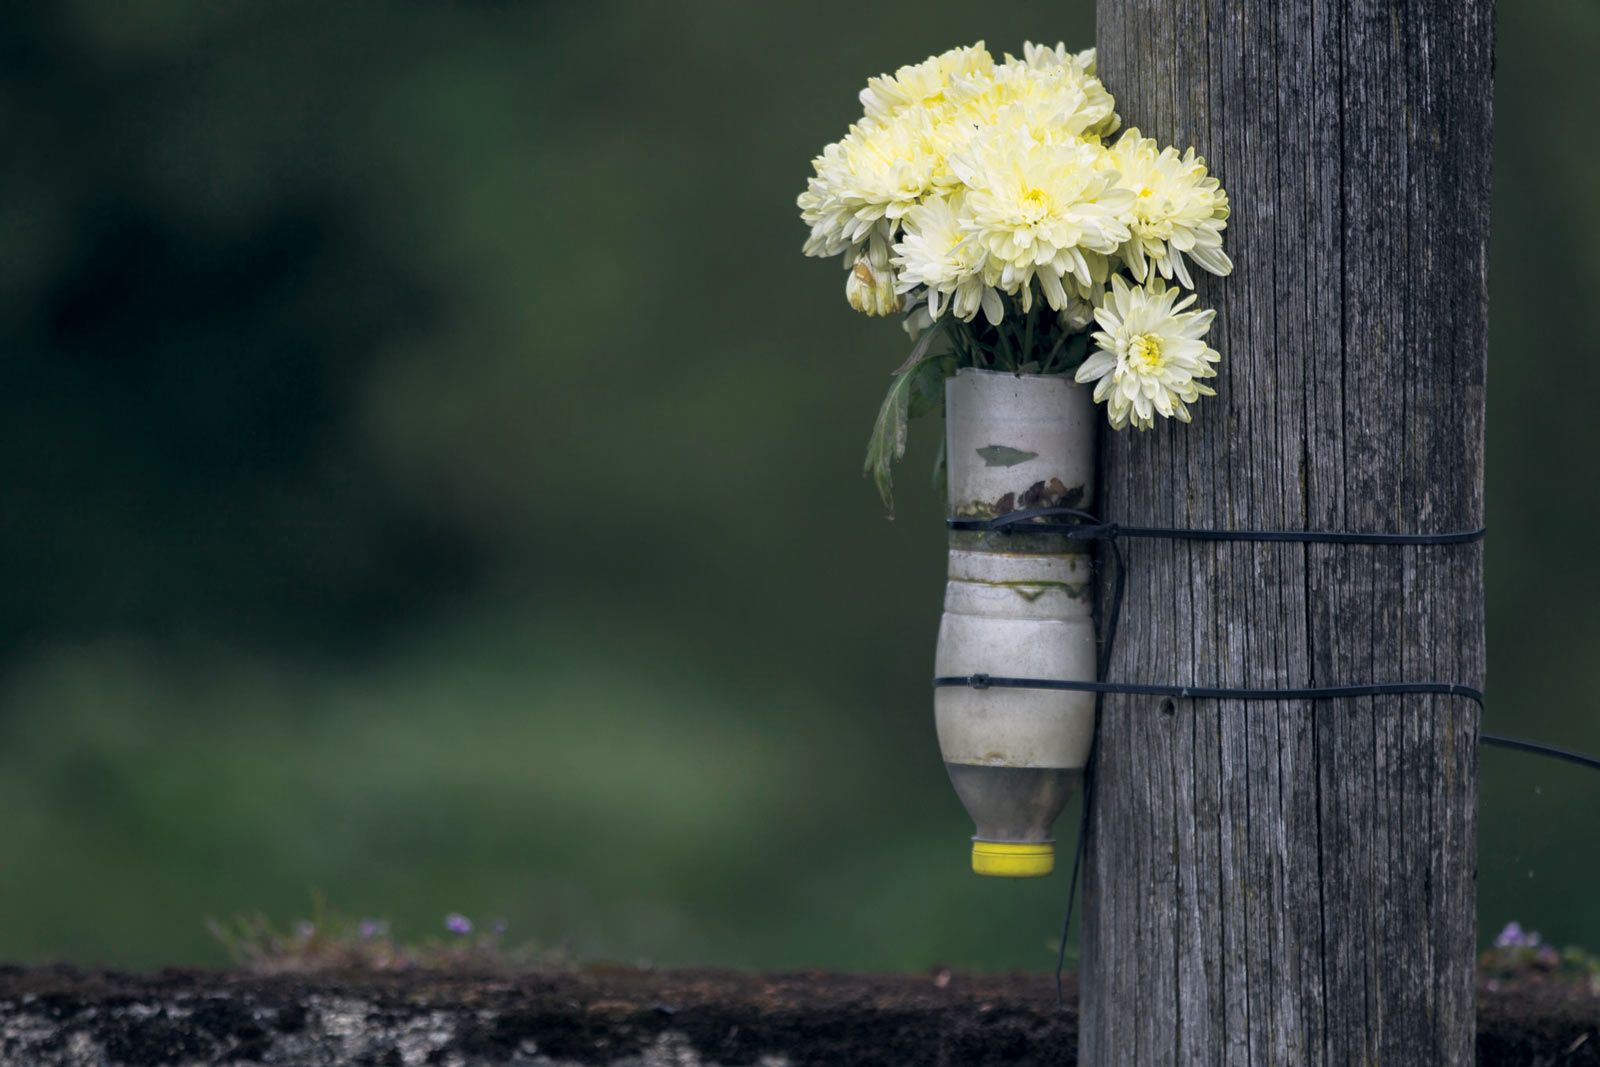 Flowers-on-ESB-Pole